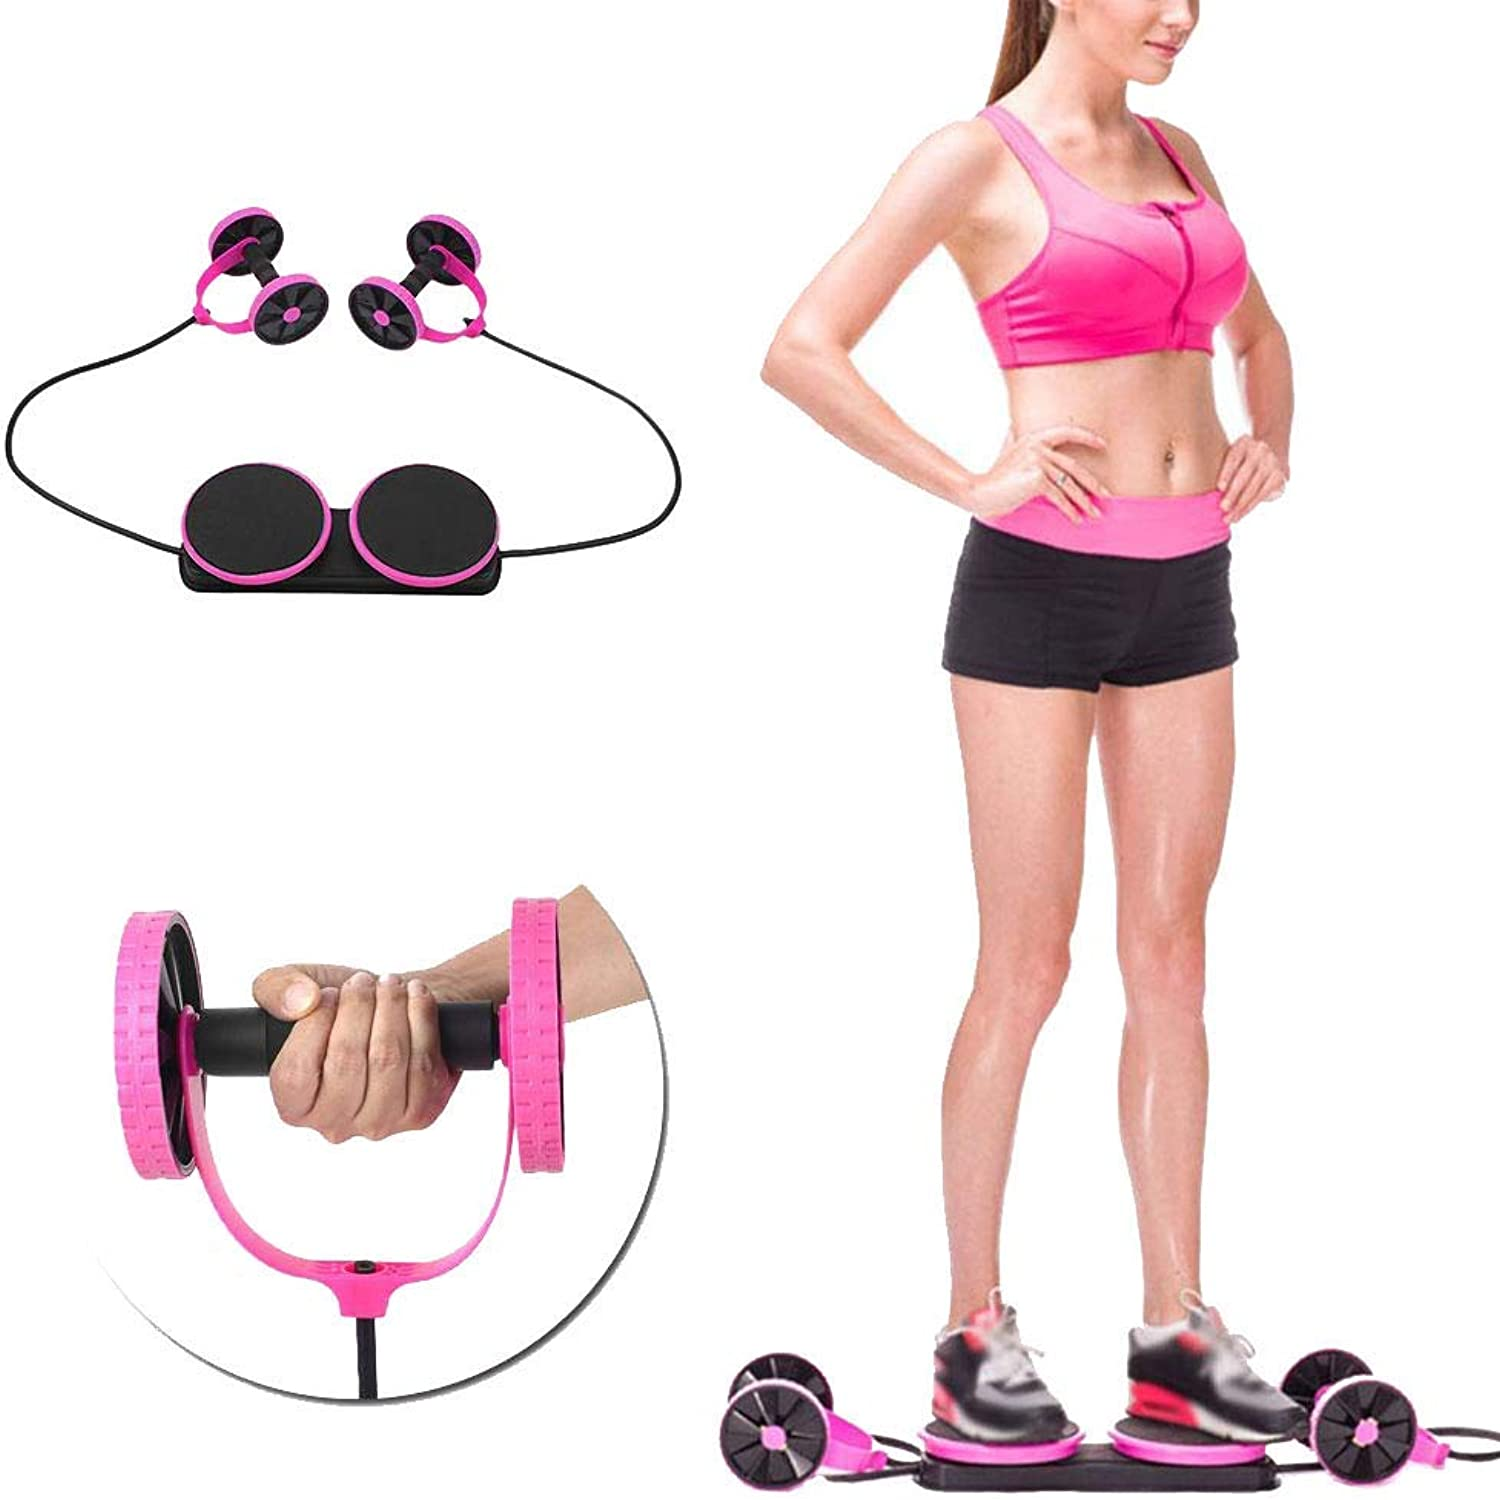 New Sport Core Double AB Roller Wheel Fitness Abdominal Exercises Equipment Waist Slimming Trainer at Home Gym